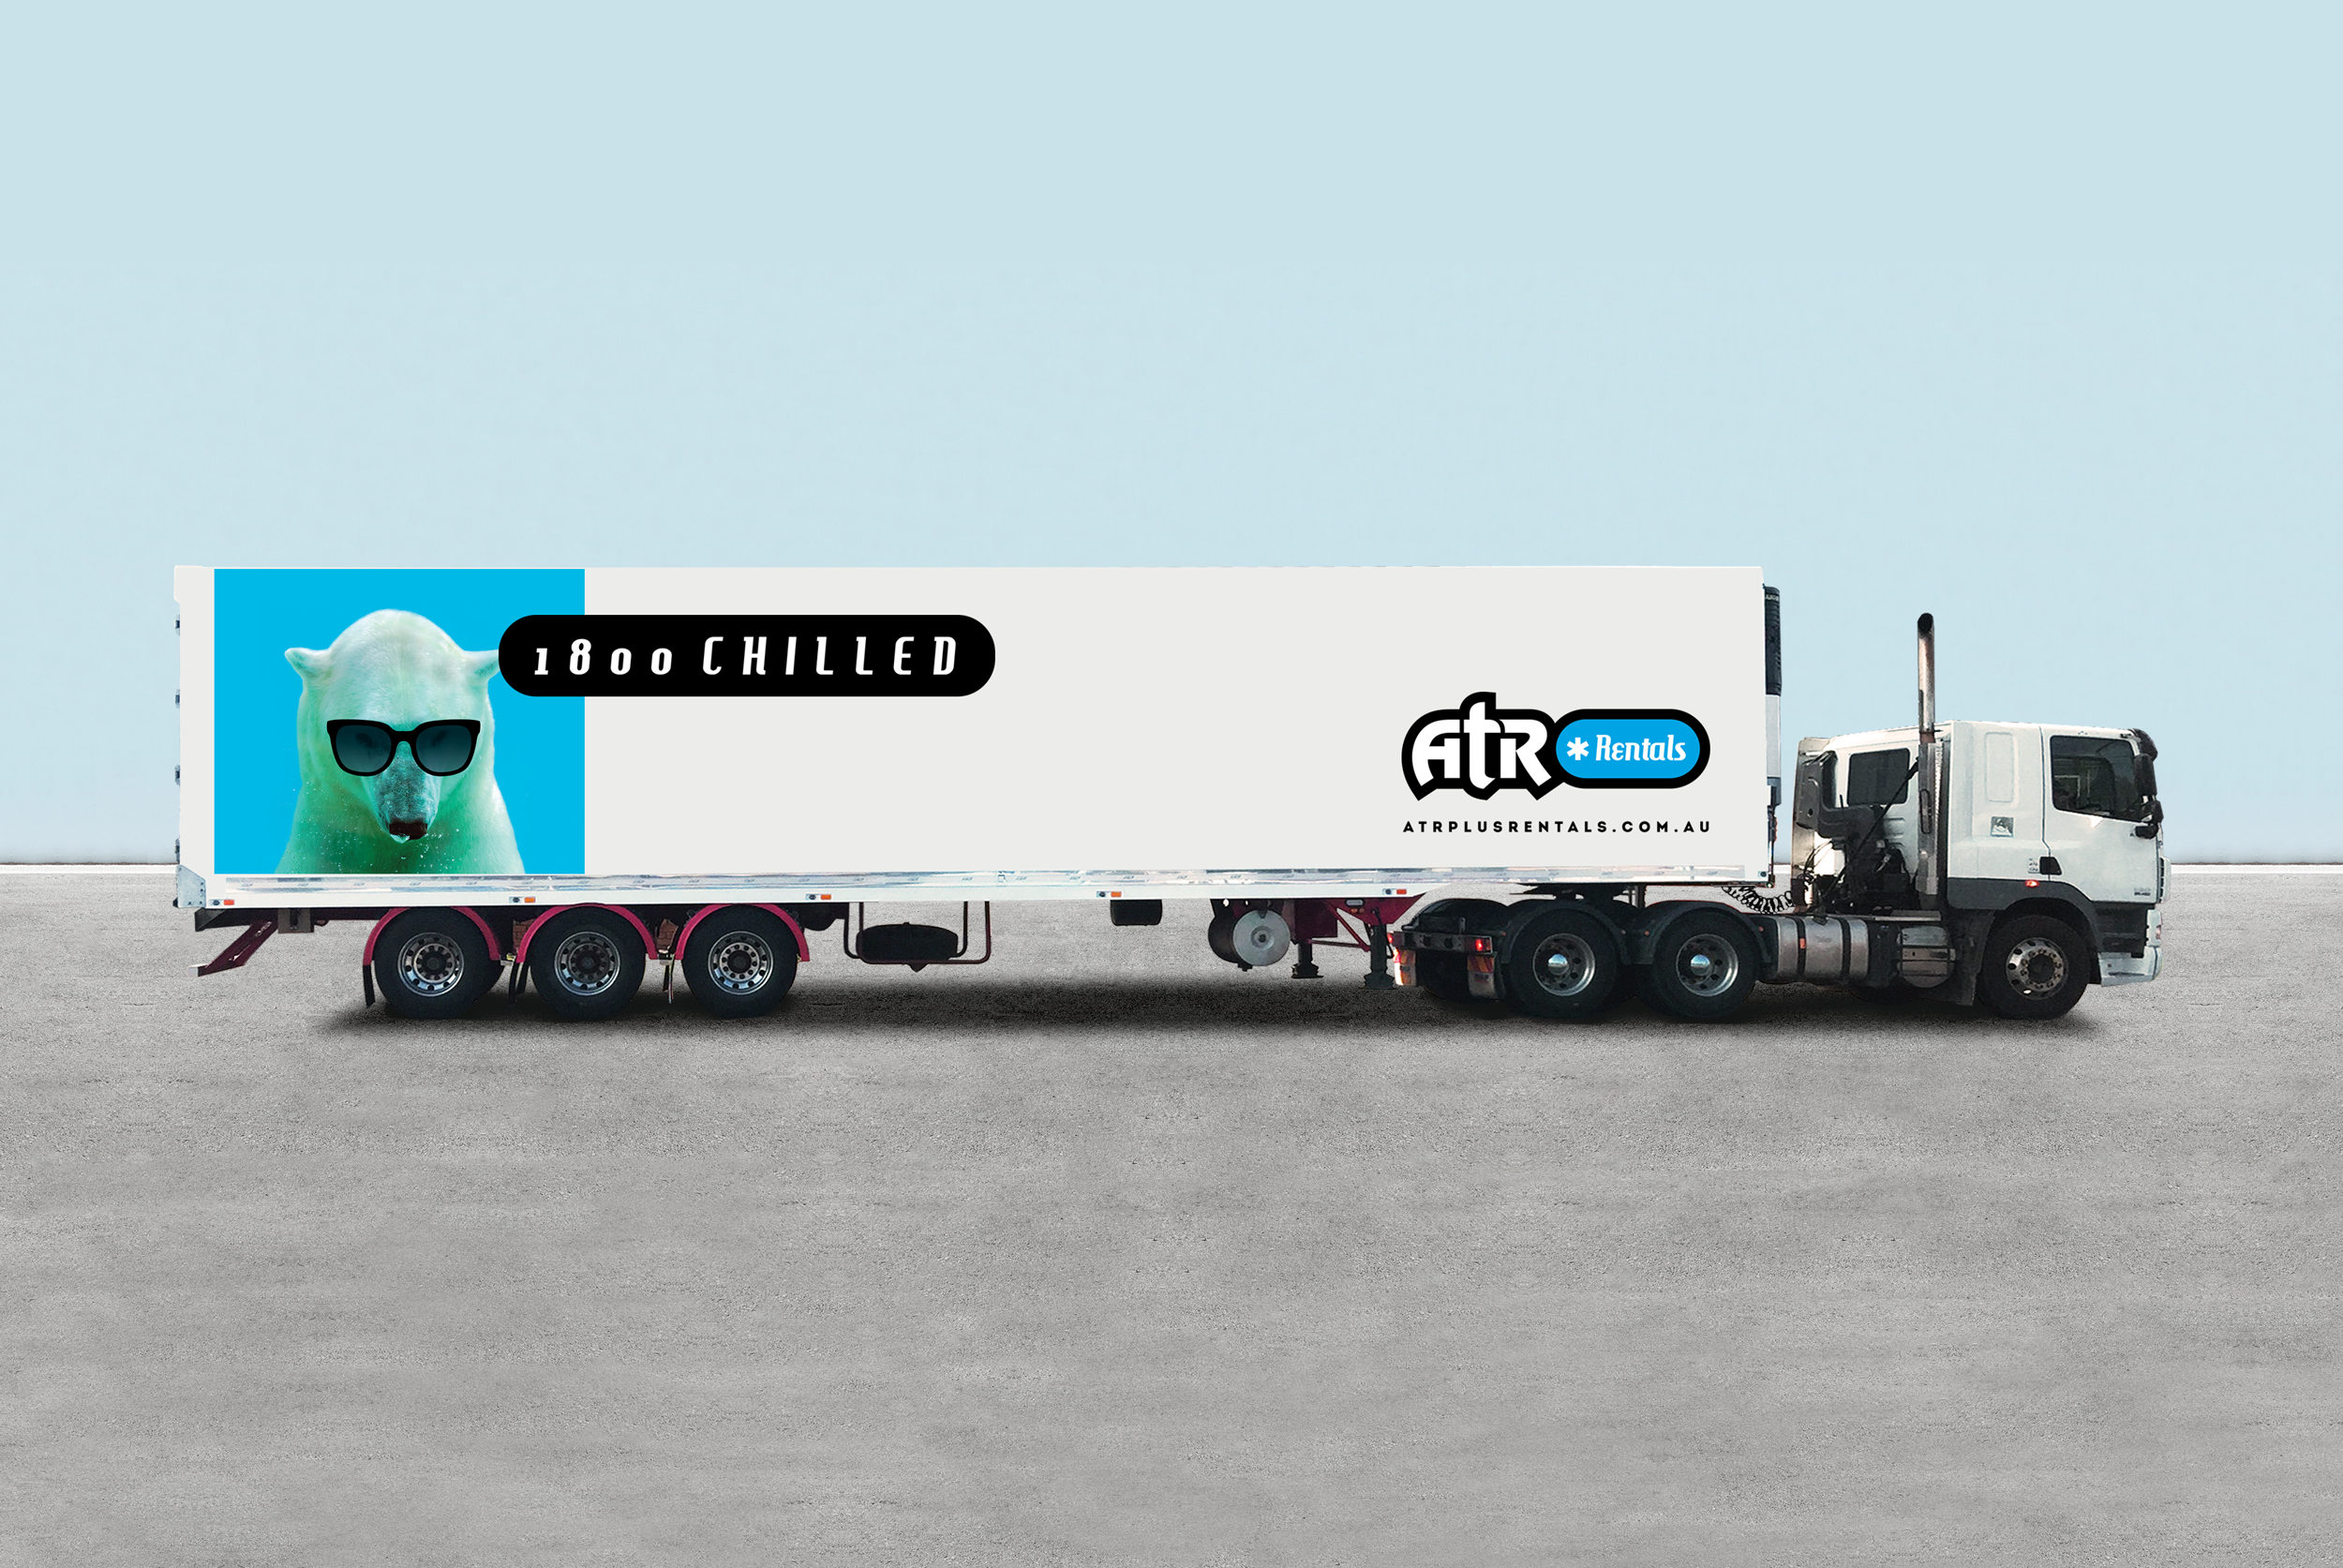 atr-refrigerated-rentals-43-ft-trailer-adelaide.png